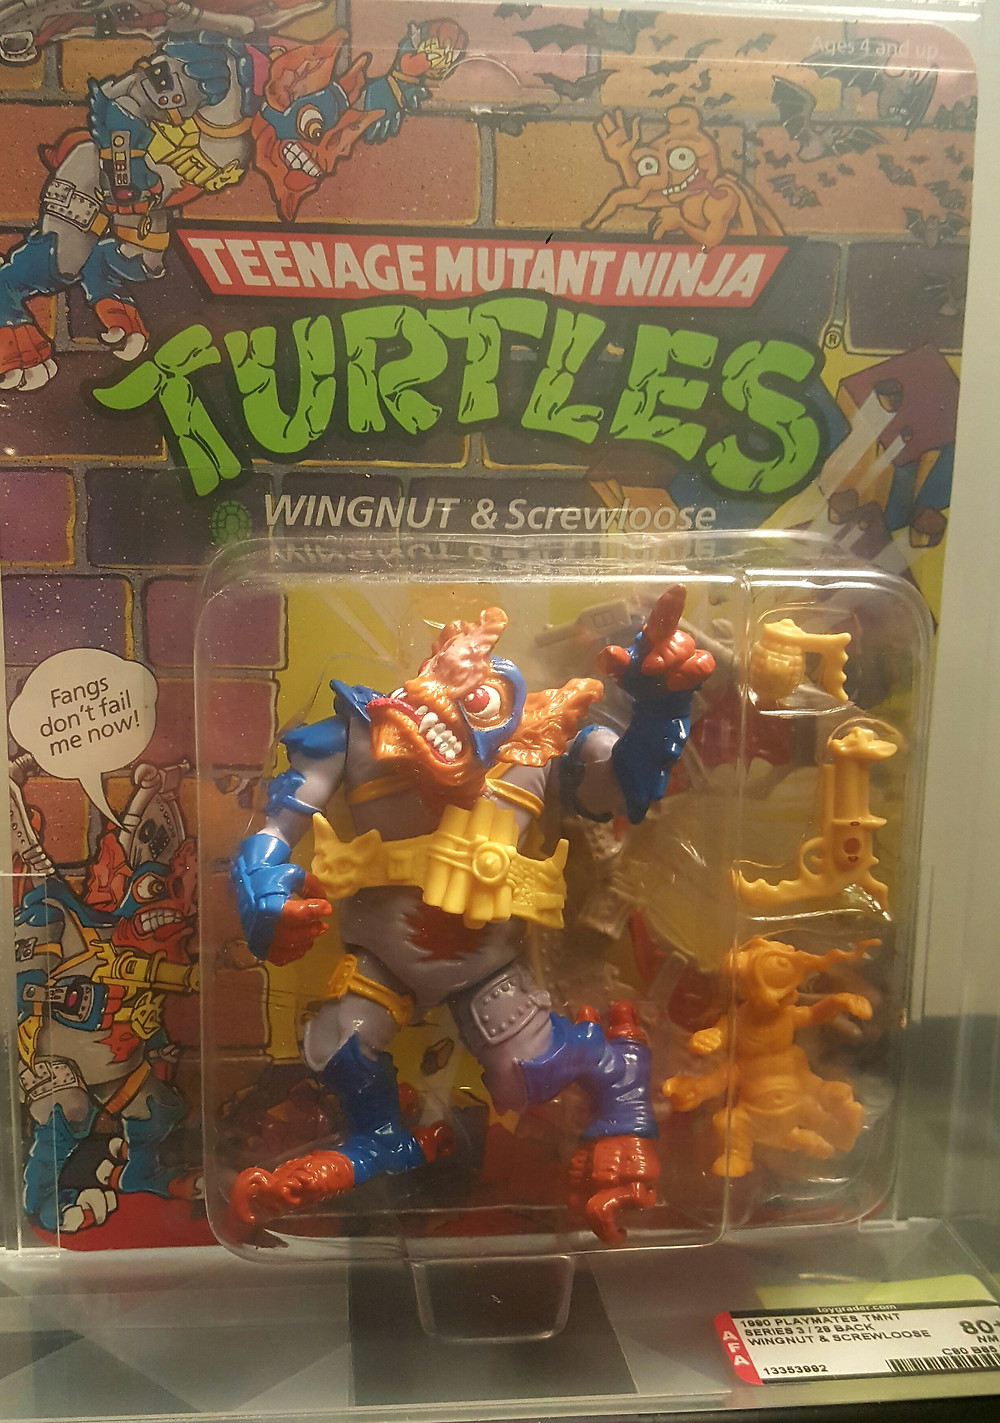 Toy Shows-Action Figure Con and Comic Book Shows Allentown Http://www.valleygoto.com